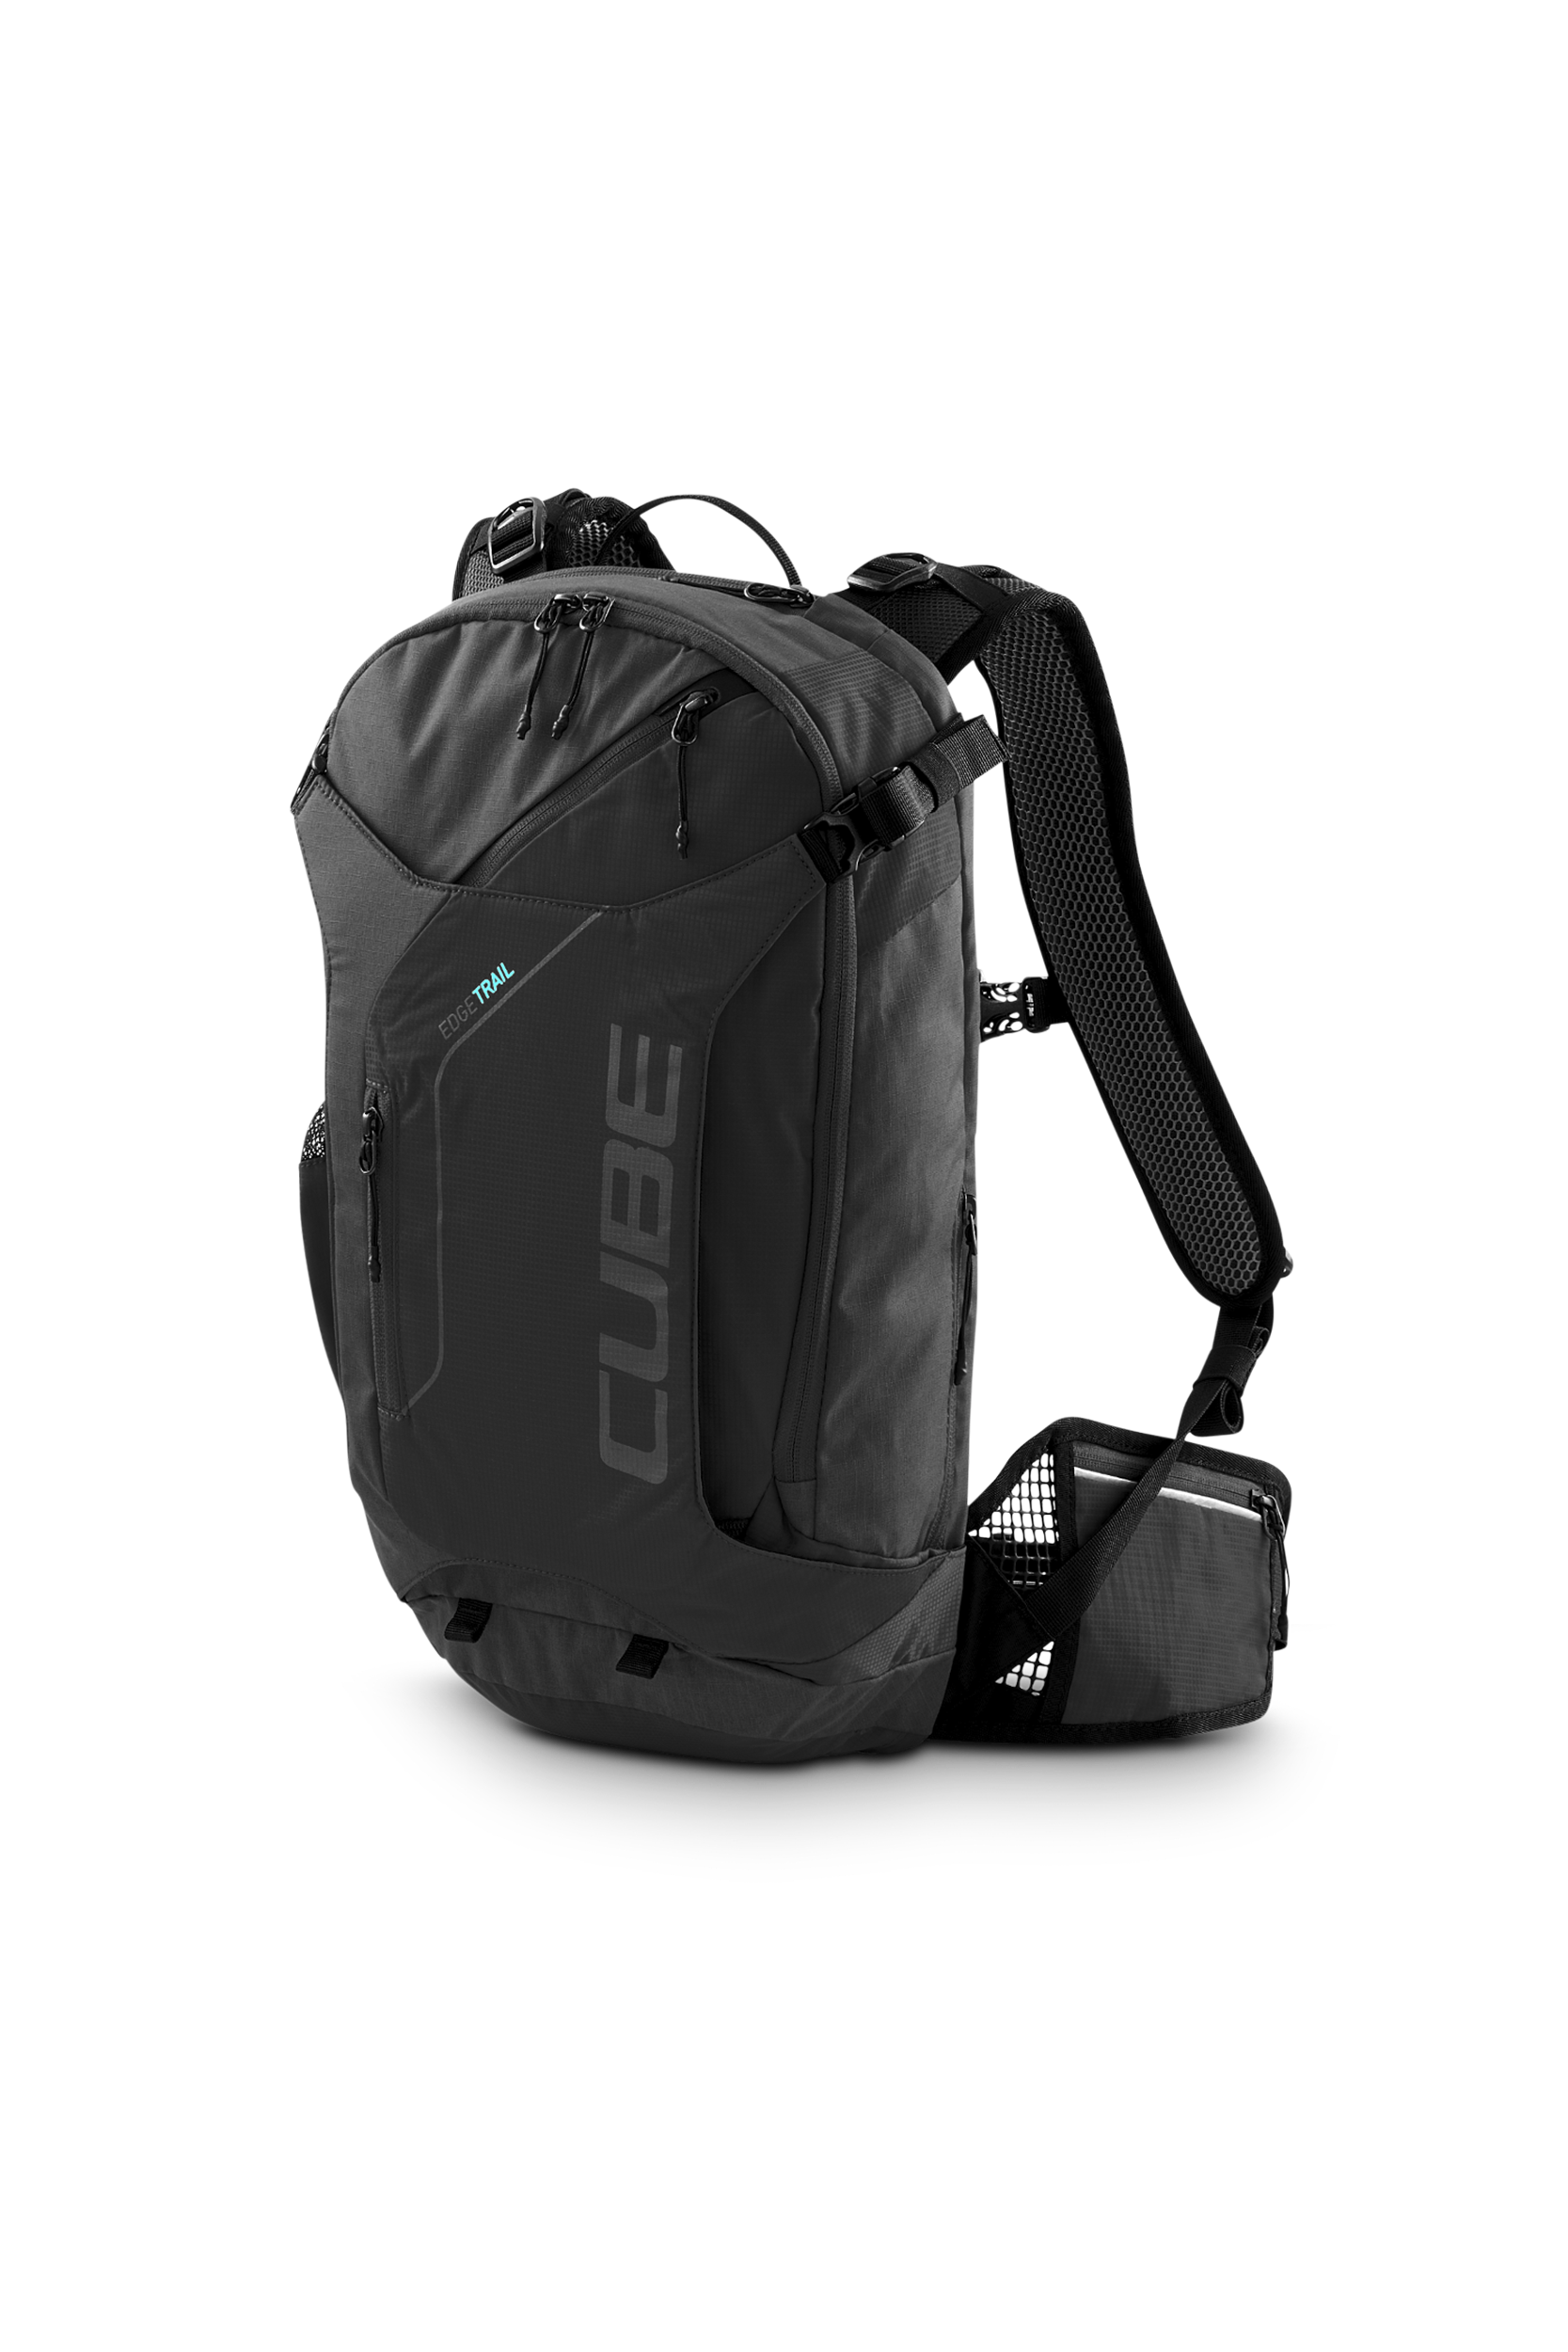 Edge Trail ab 139,95 €